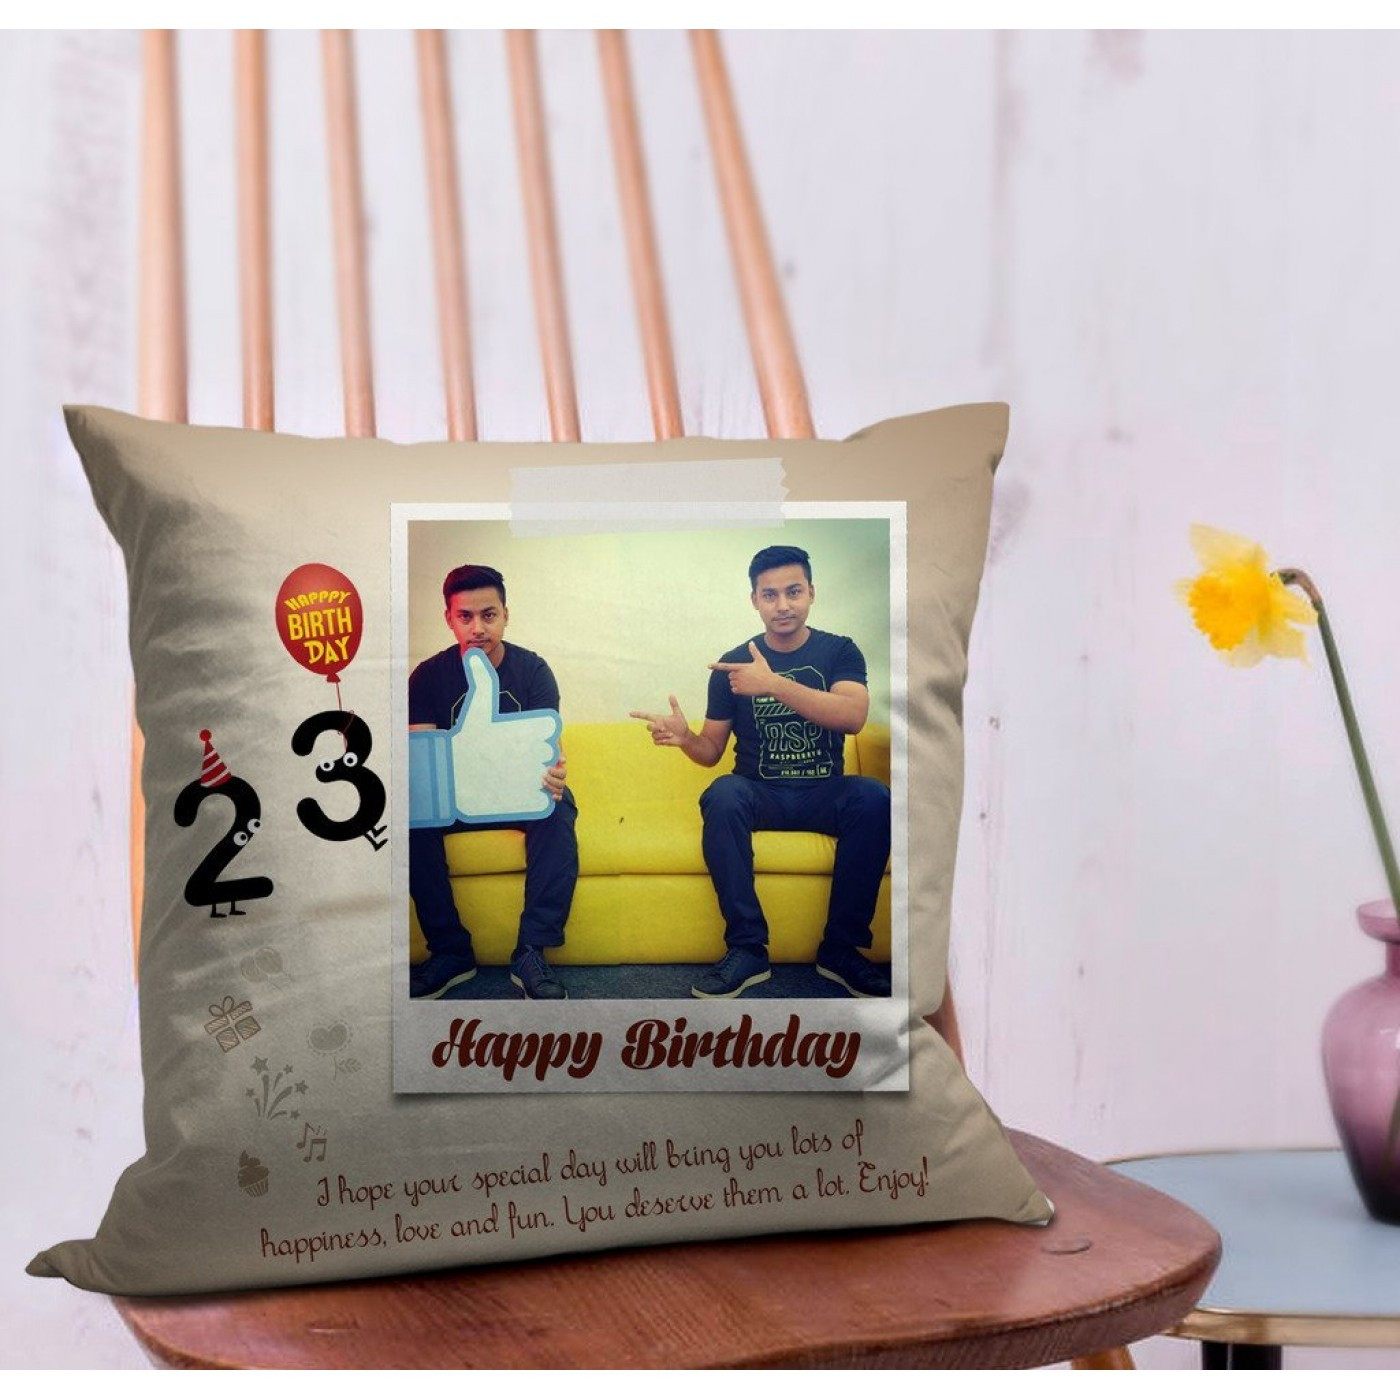 Best ideas about Custom Birthday Gifts . Save or Pin Birthday Gift for Boyfriend Personalized Cushion Now.